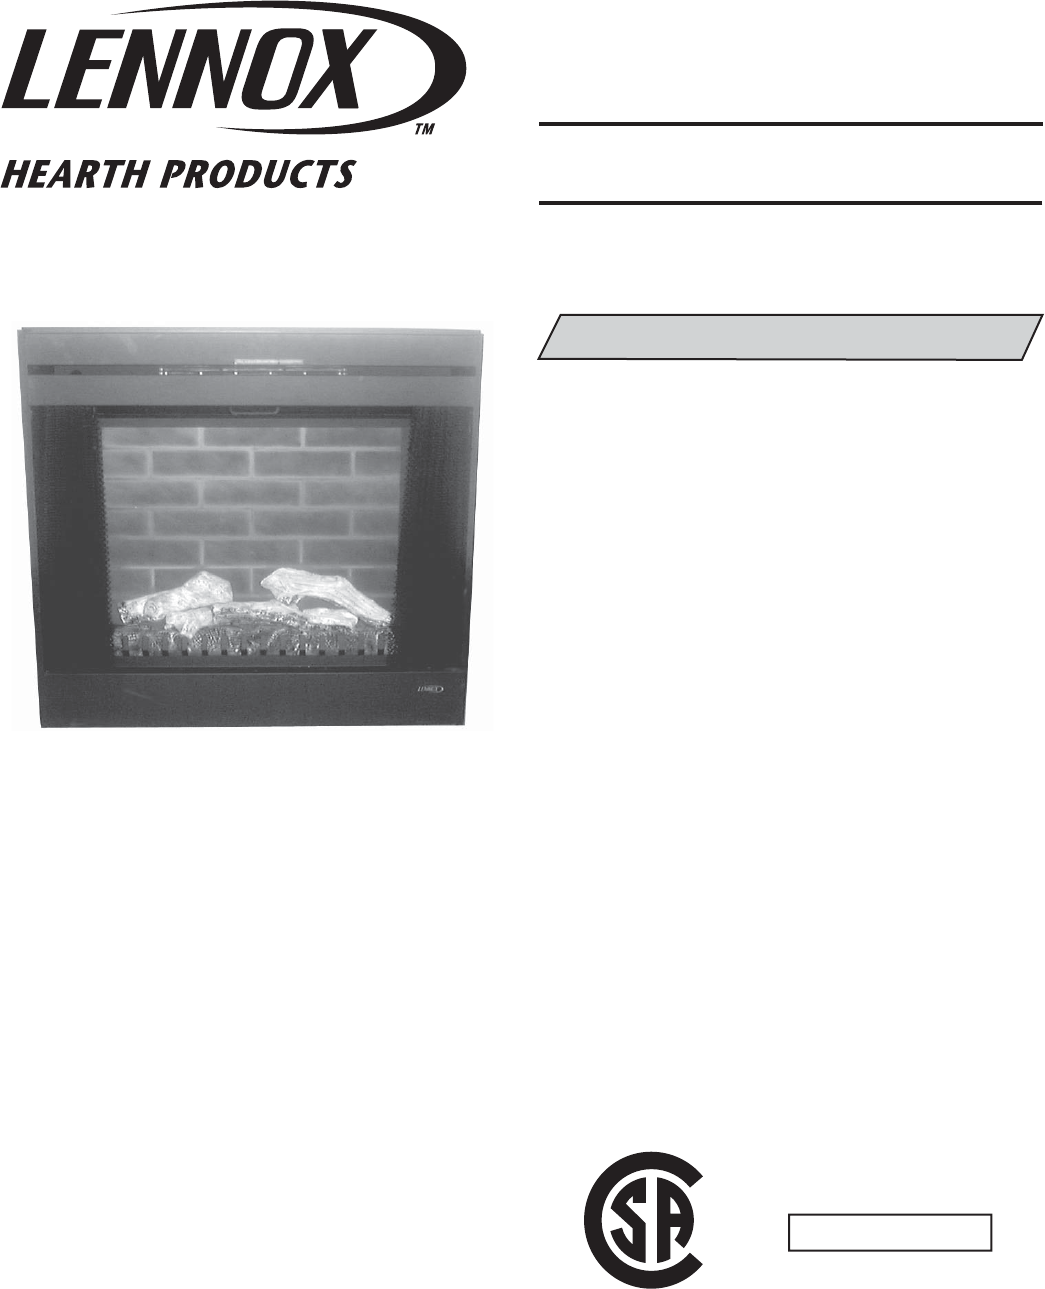 Lennox Hearth Indoor Fireplace Mpe 33r User Guide